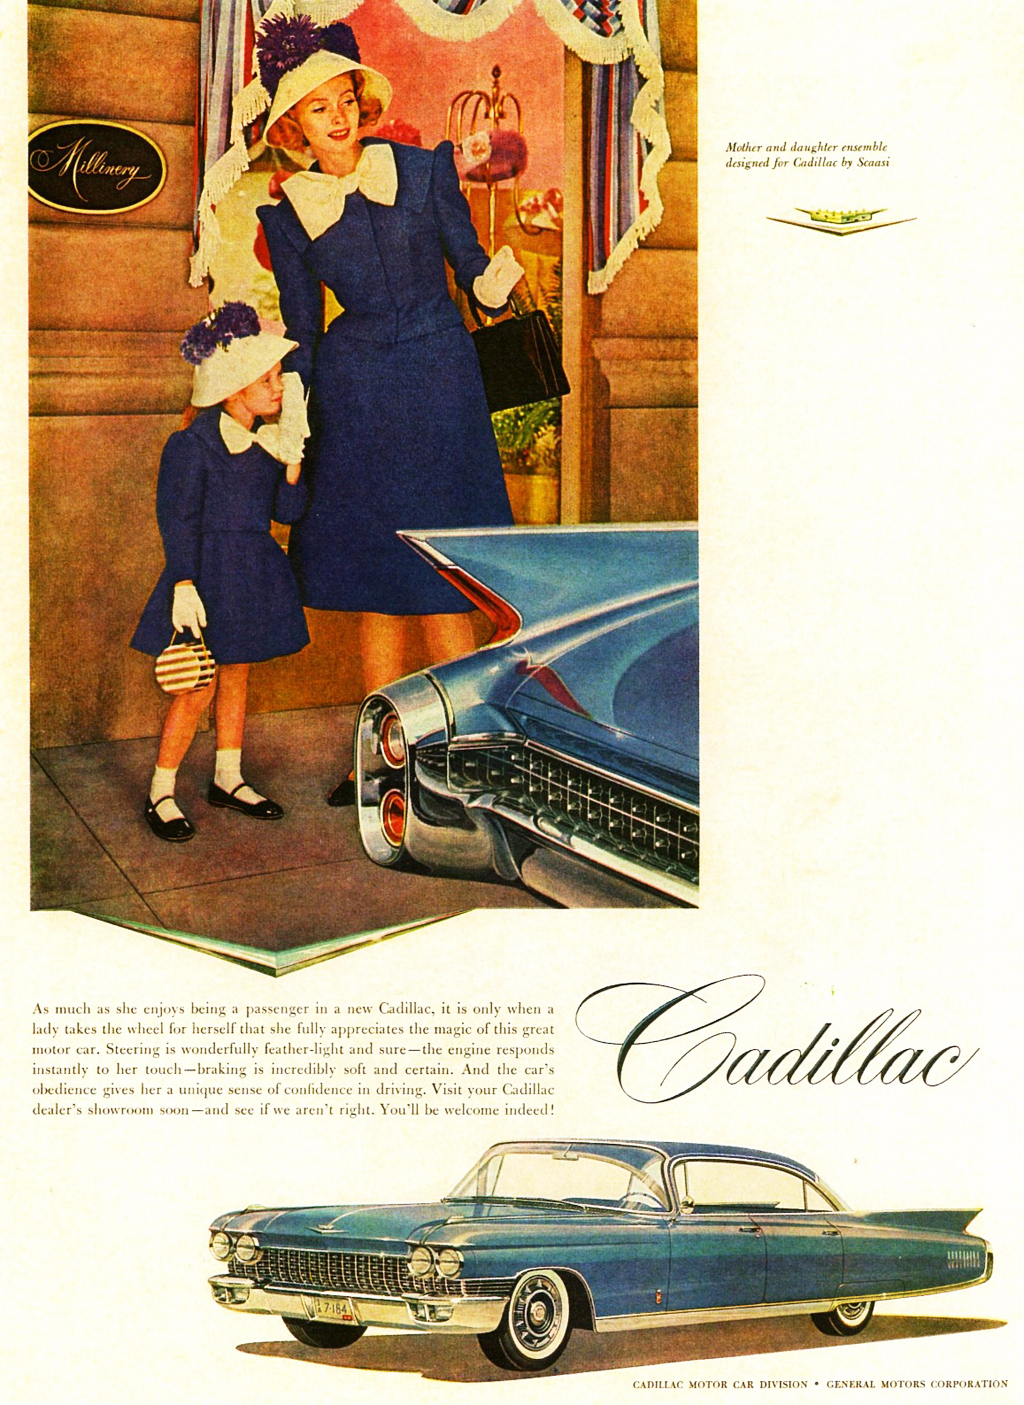 1960 Cadillac Fleetwood ad b | CLASSIC CARS TODAY ONLINE